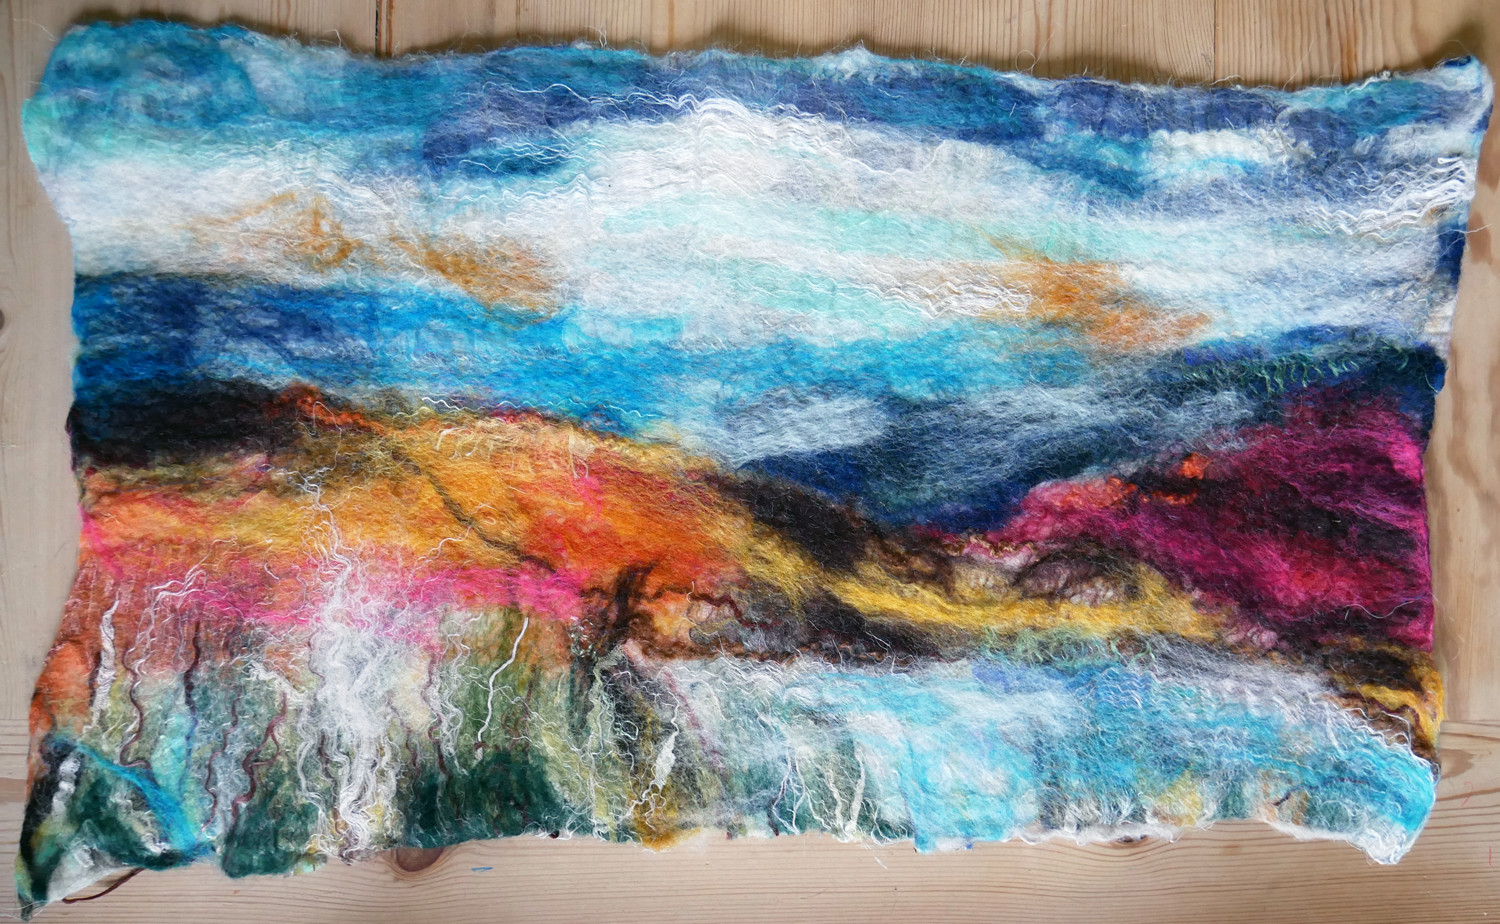 Textile art made at Valerie Wartelle's Felted Landscapes workshop